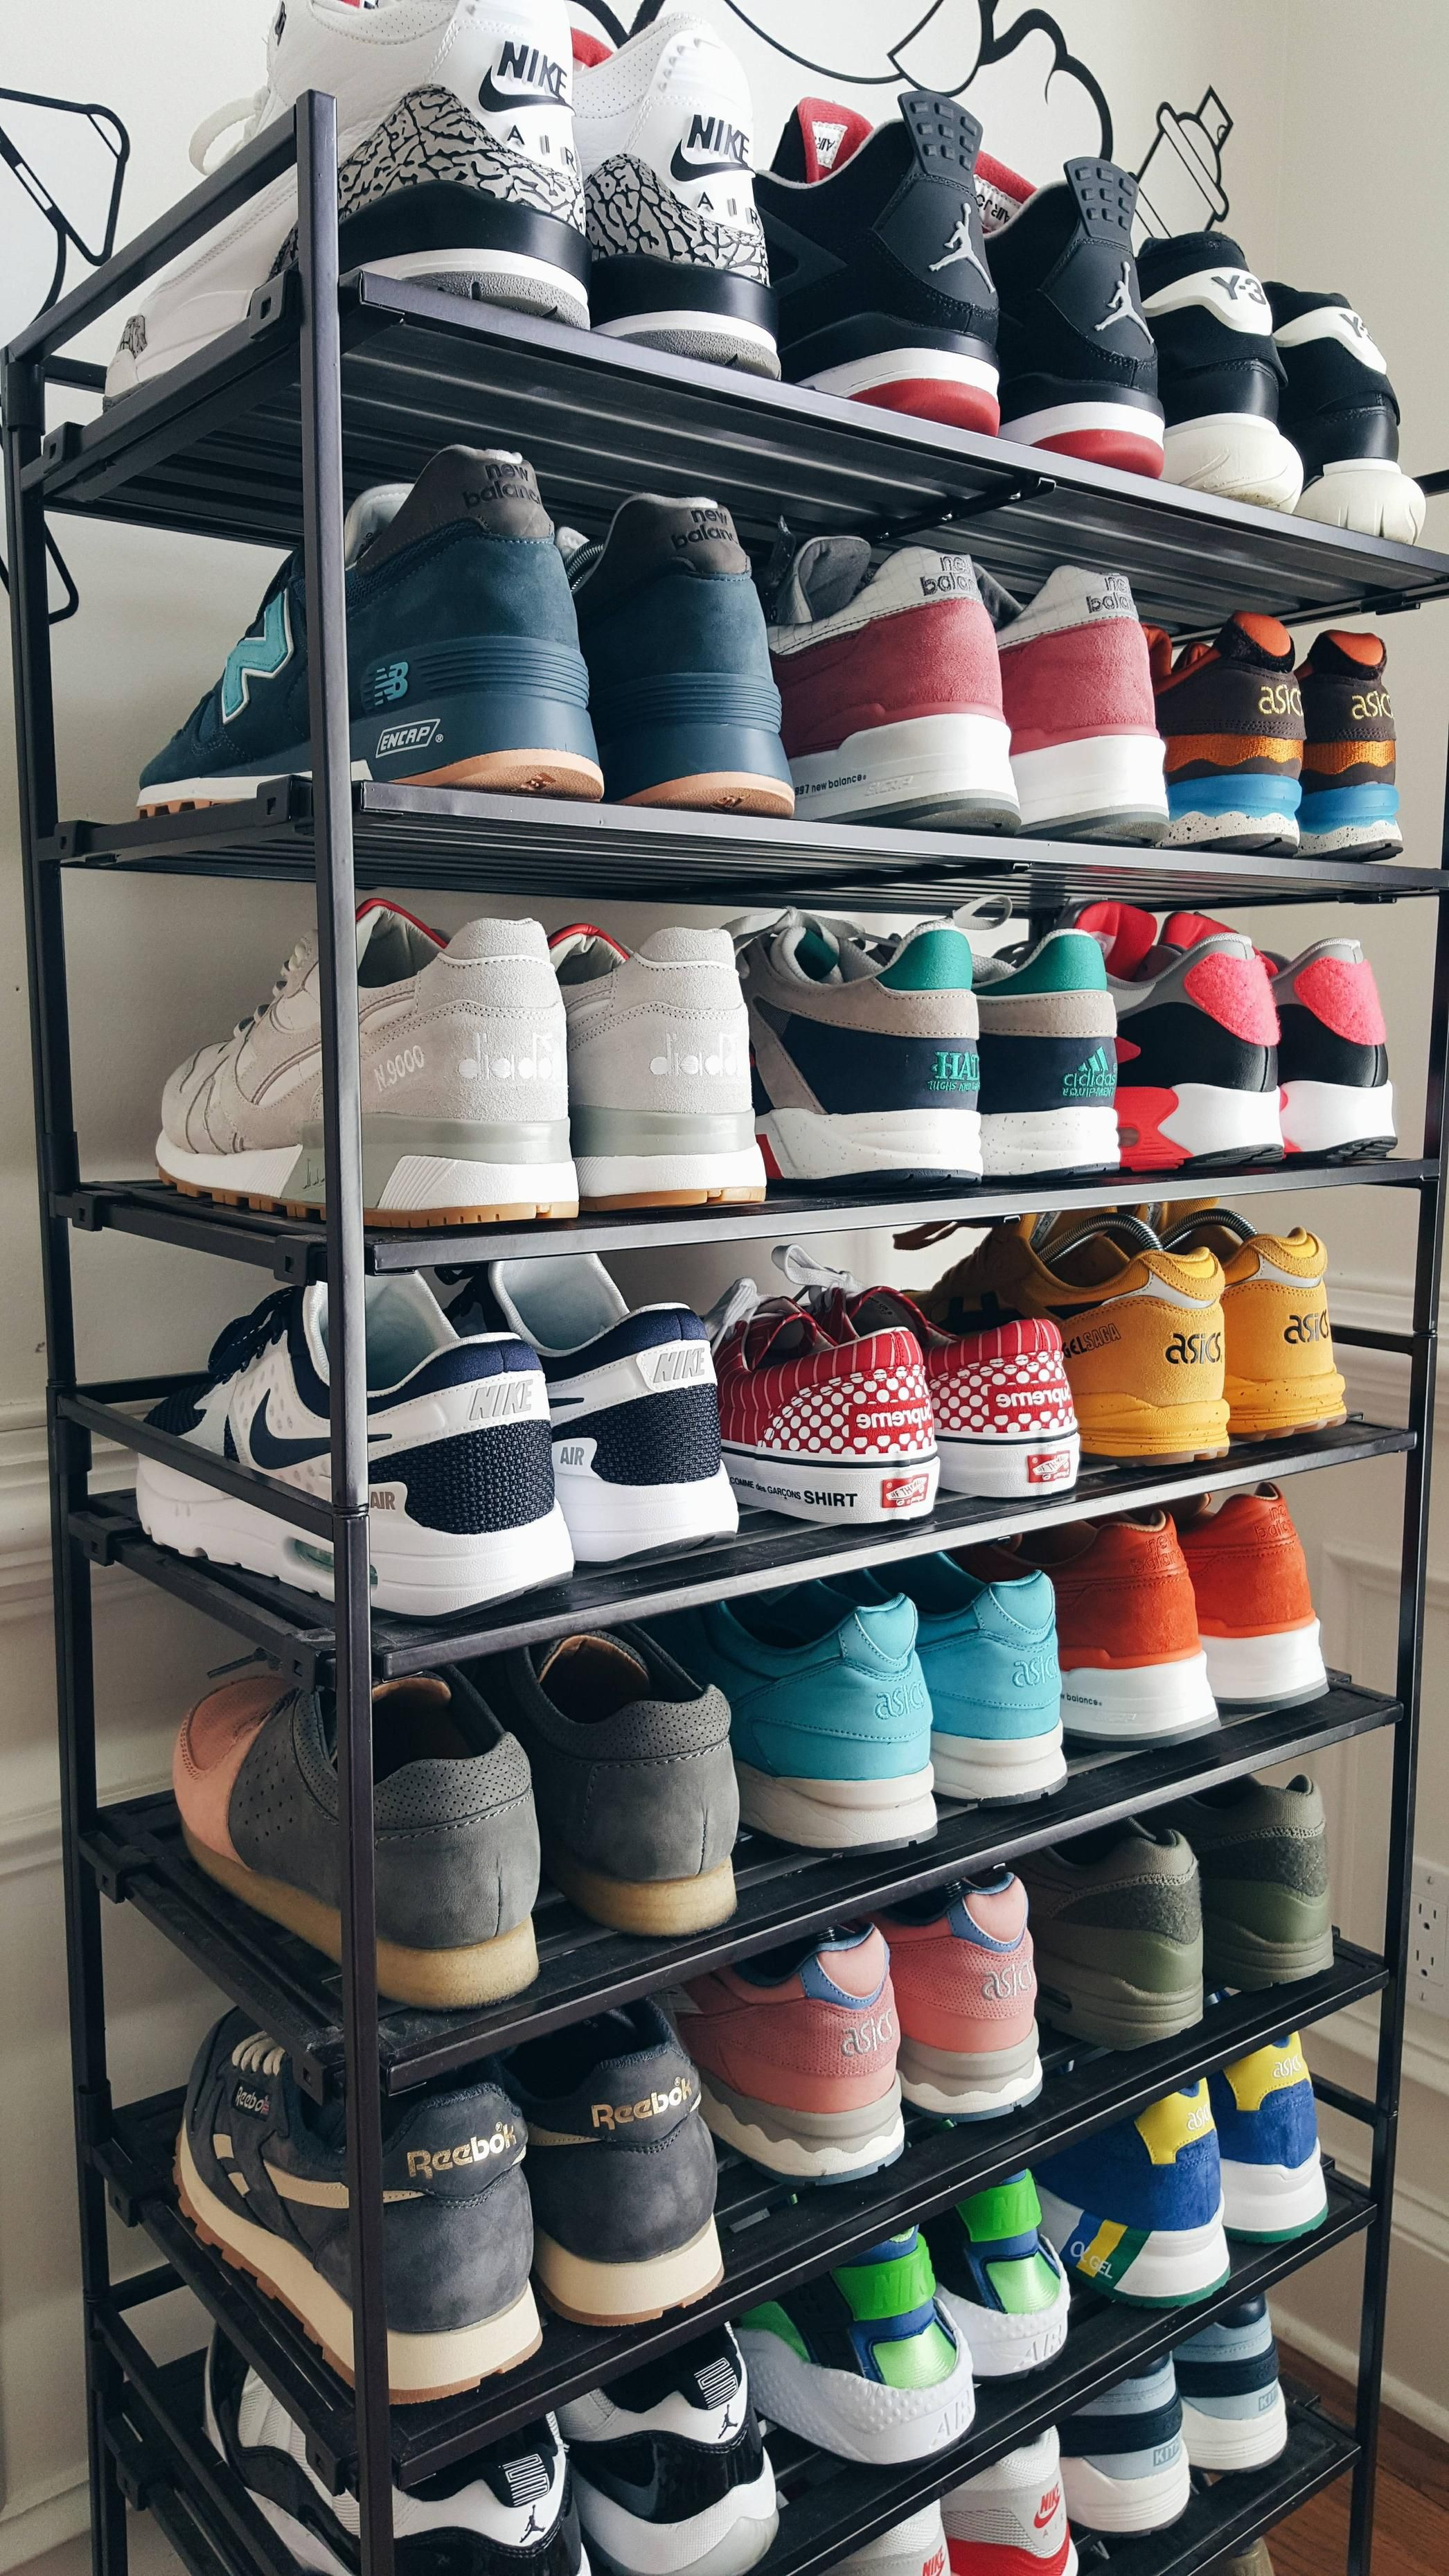 I put this shoe rack here because I care a lot about my shoes and I will definitely start a collection soon so in the future I'll have a huge collection